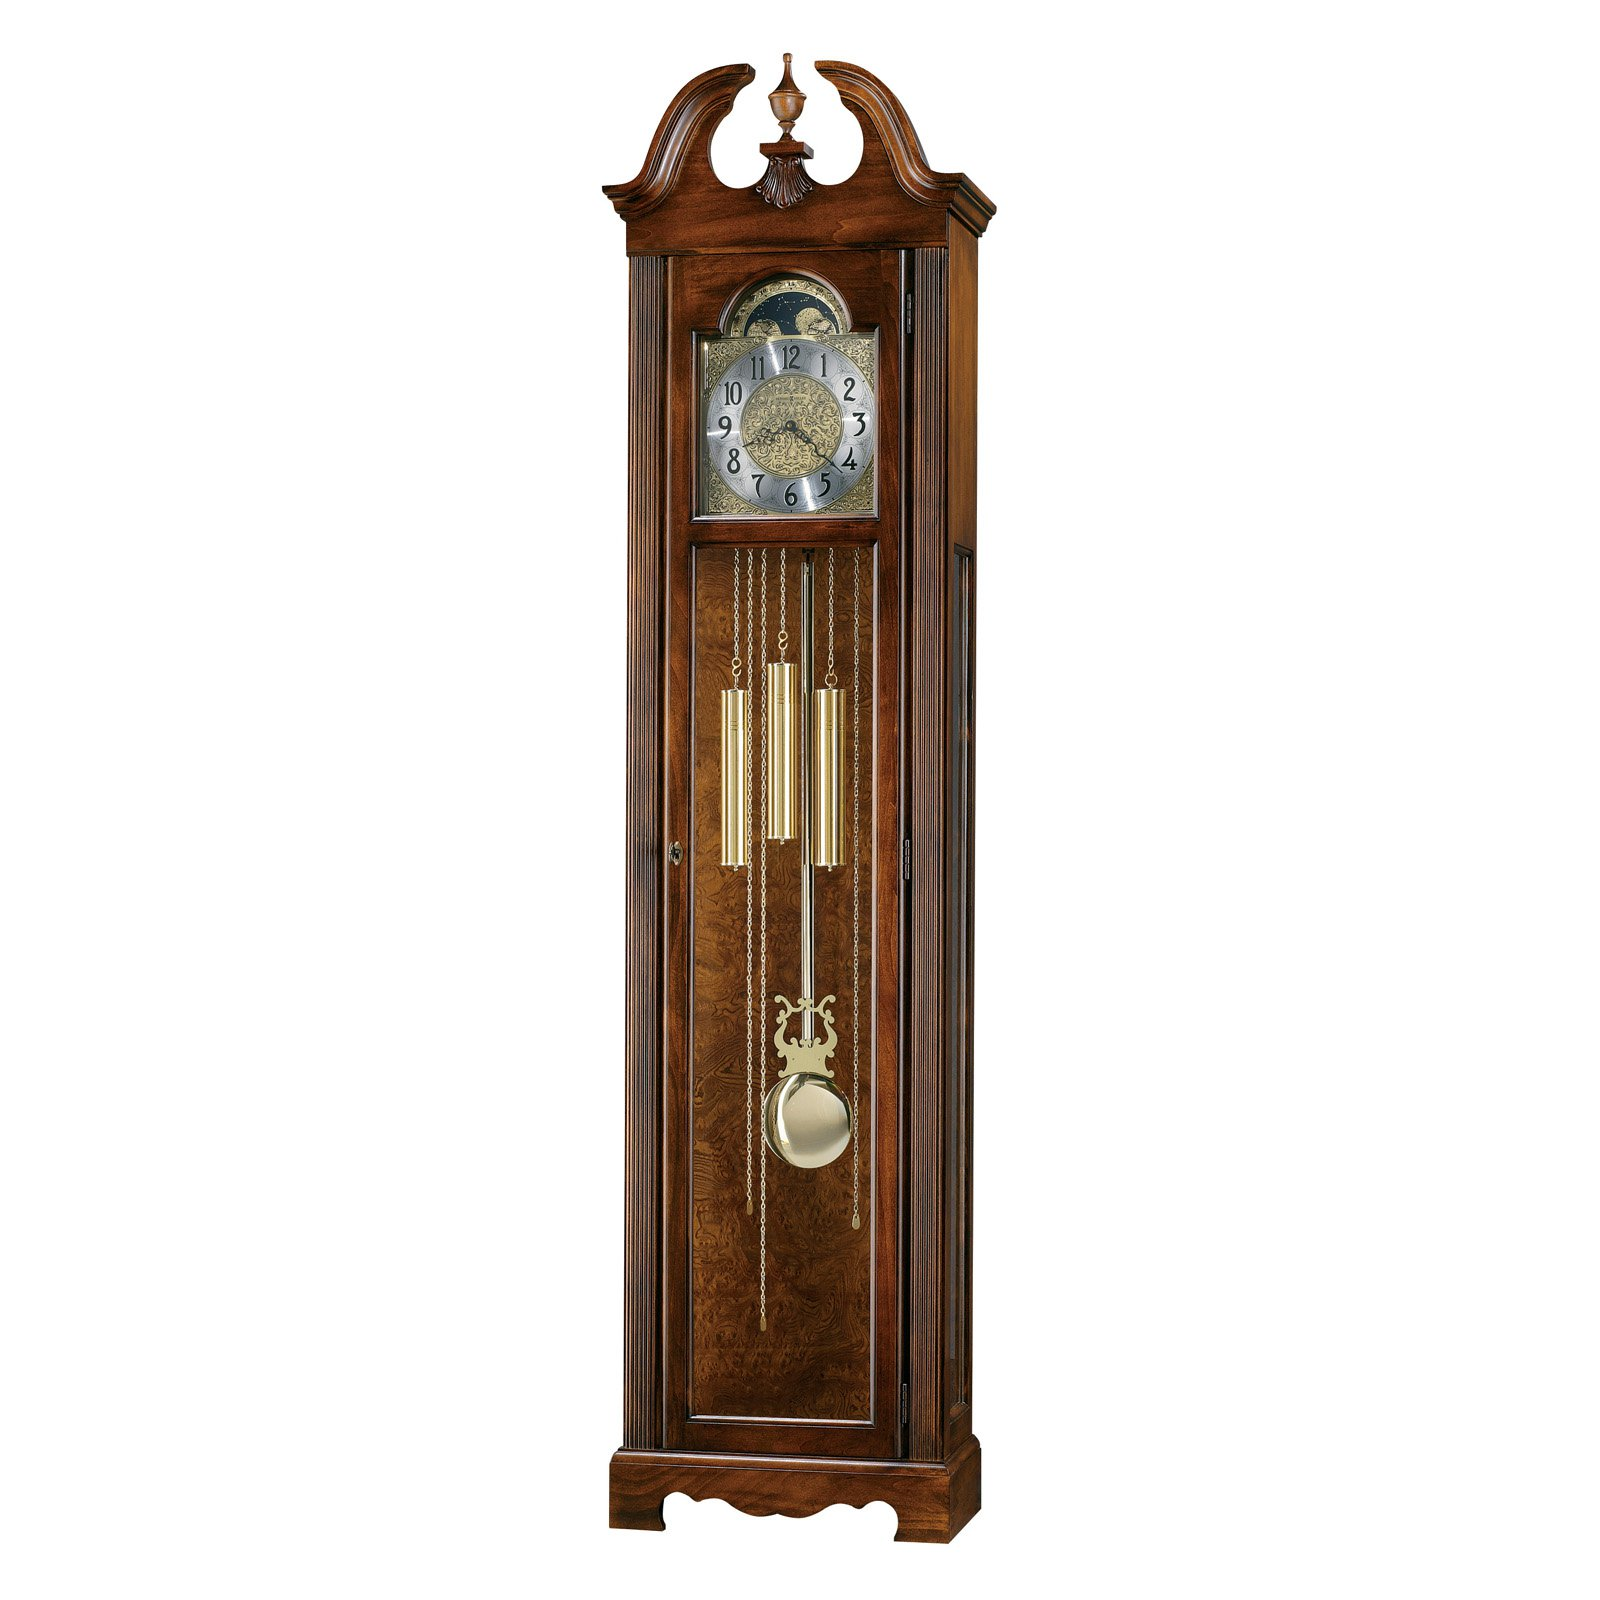 Howard Miller 611-138 Princeton Grandfather Clock by Howard Miller